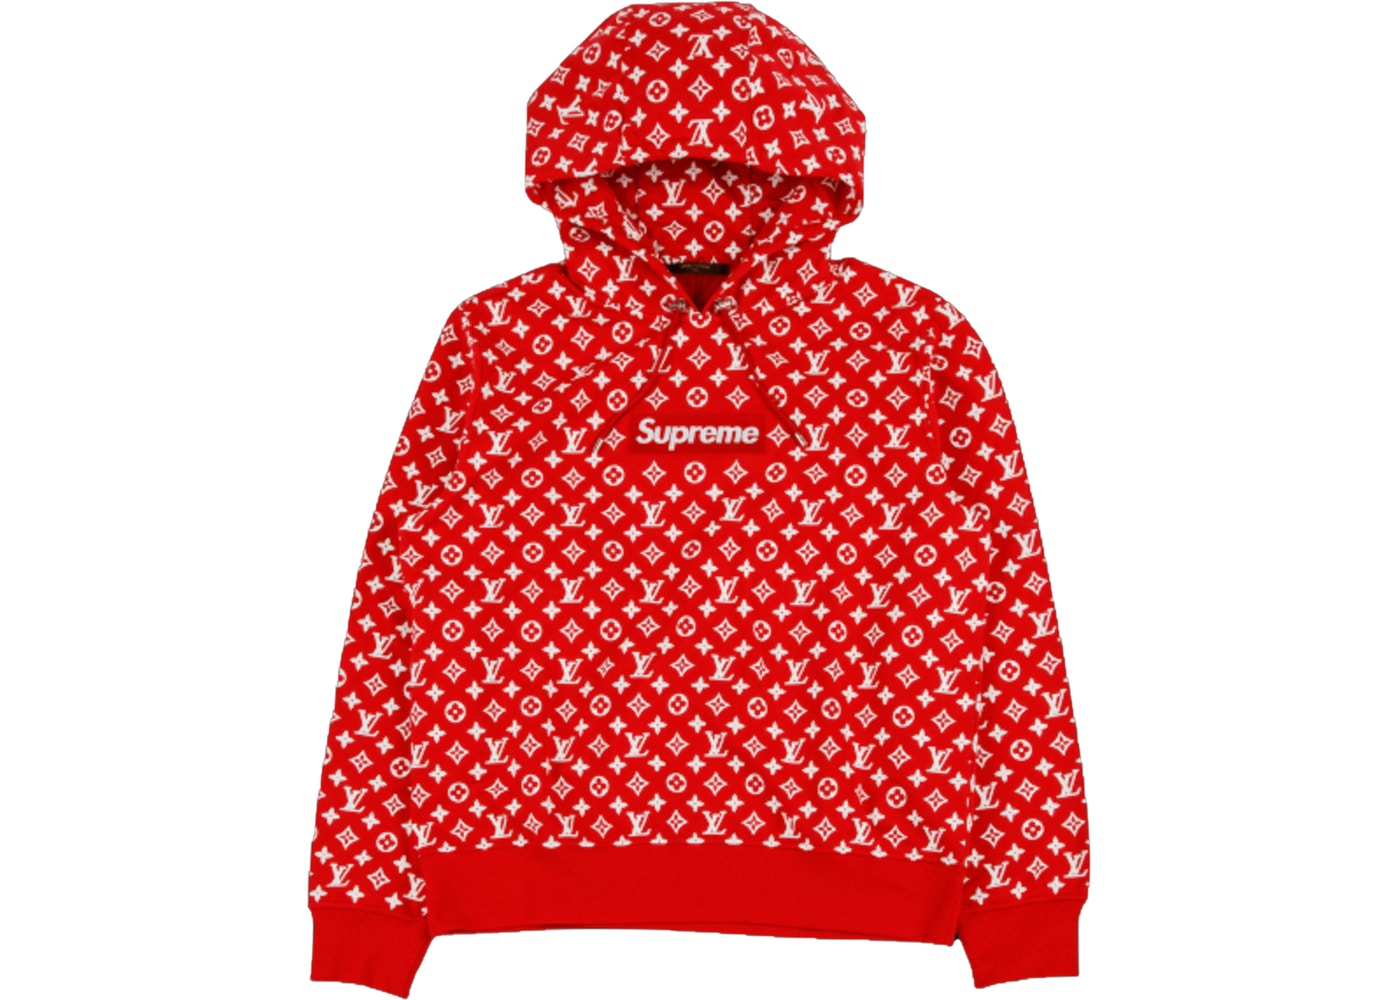 Supreme x Louis Vuitton Box Logo Hooded Sweatshirt Red.